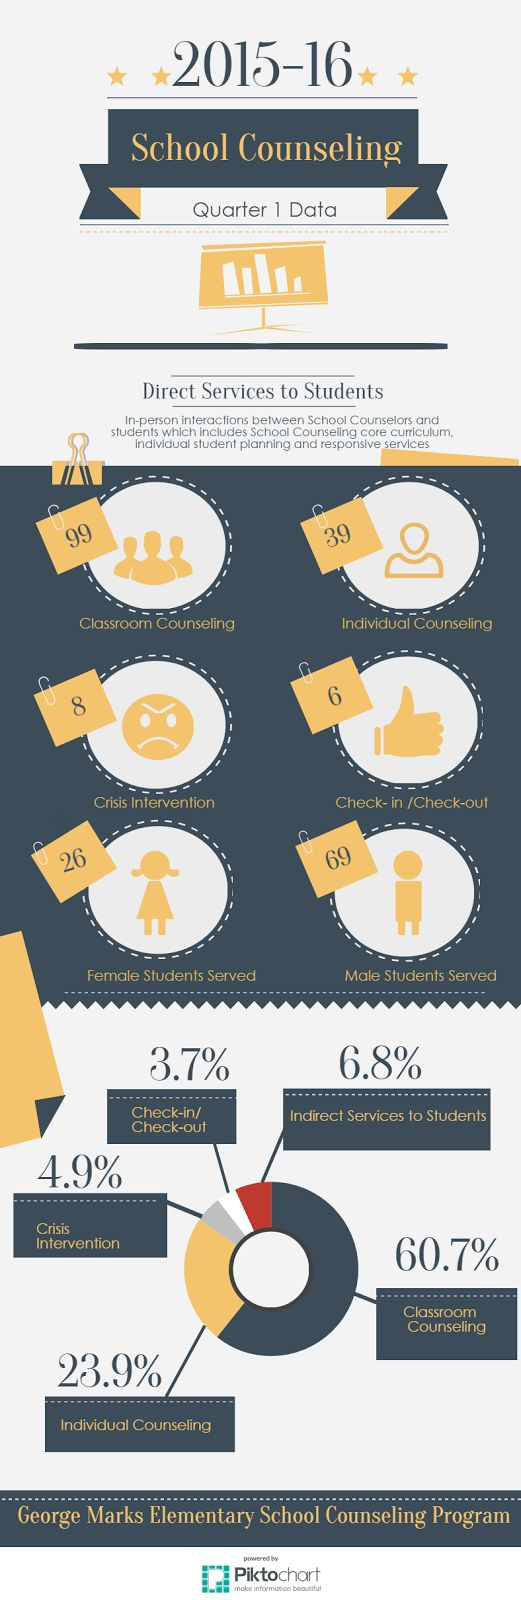 Exploring School Counseling: Making your data POP with infographics!